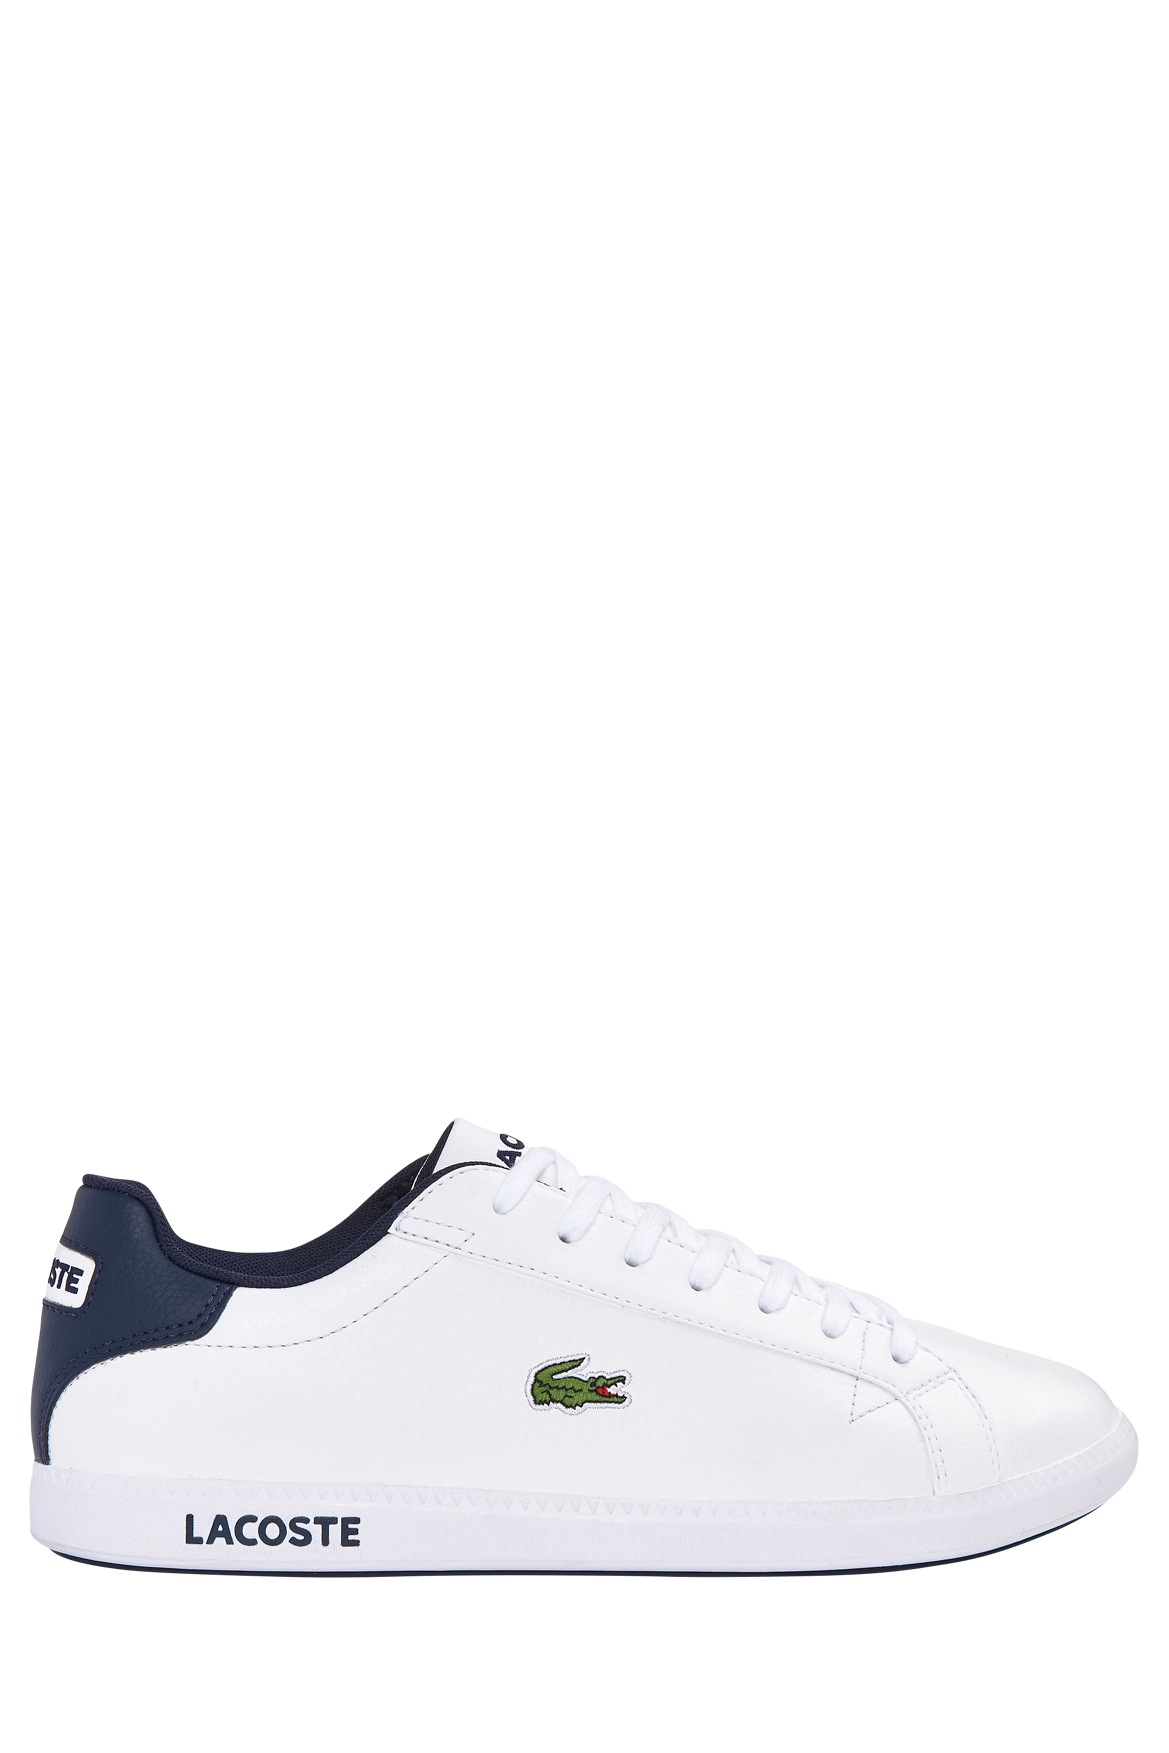 Lacoste Mens Shoes Myer